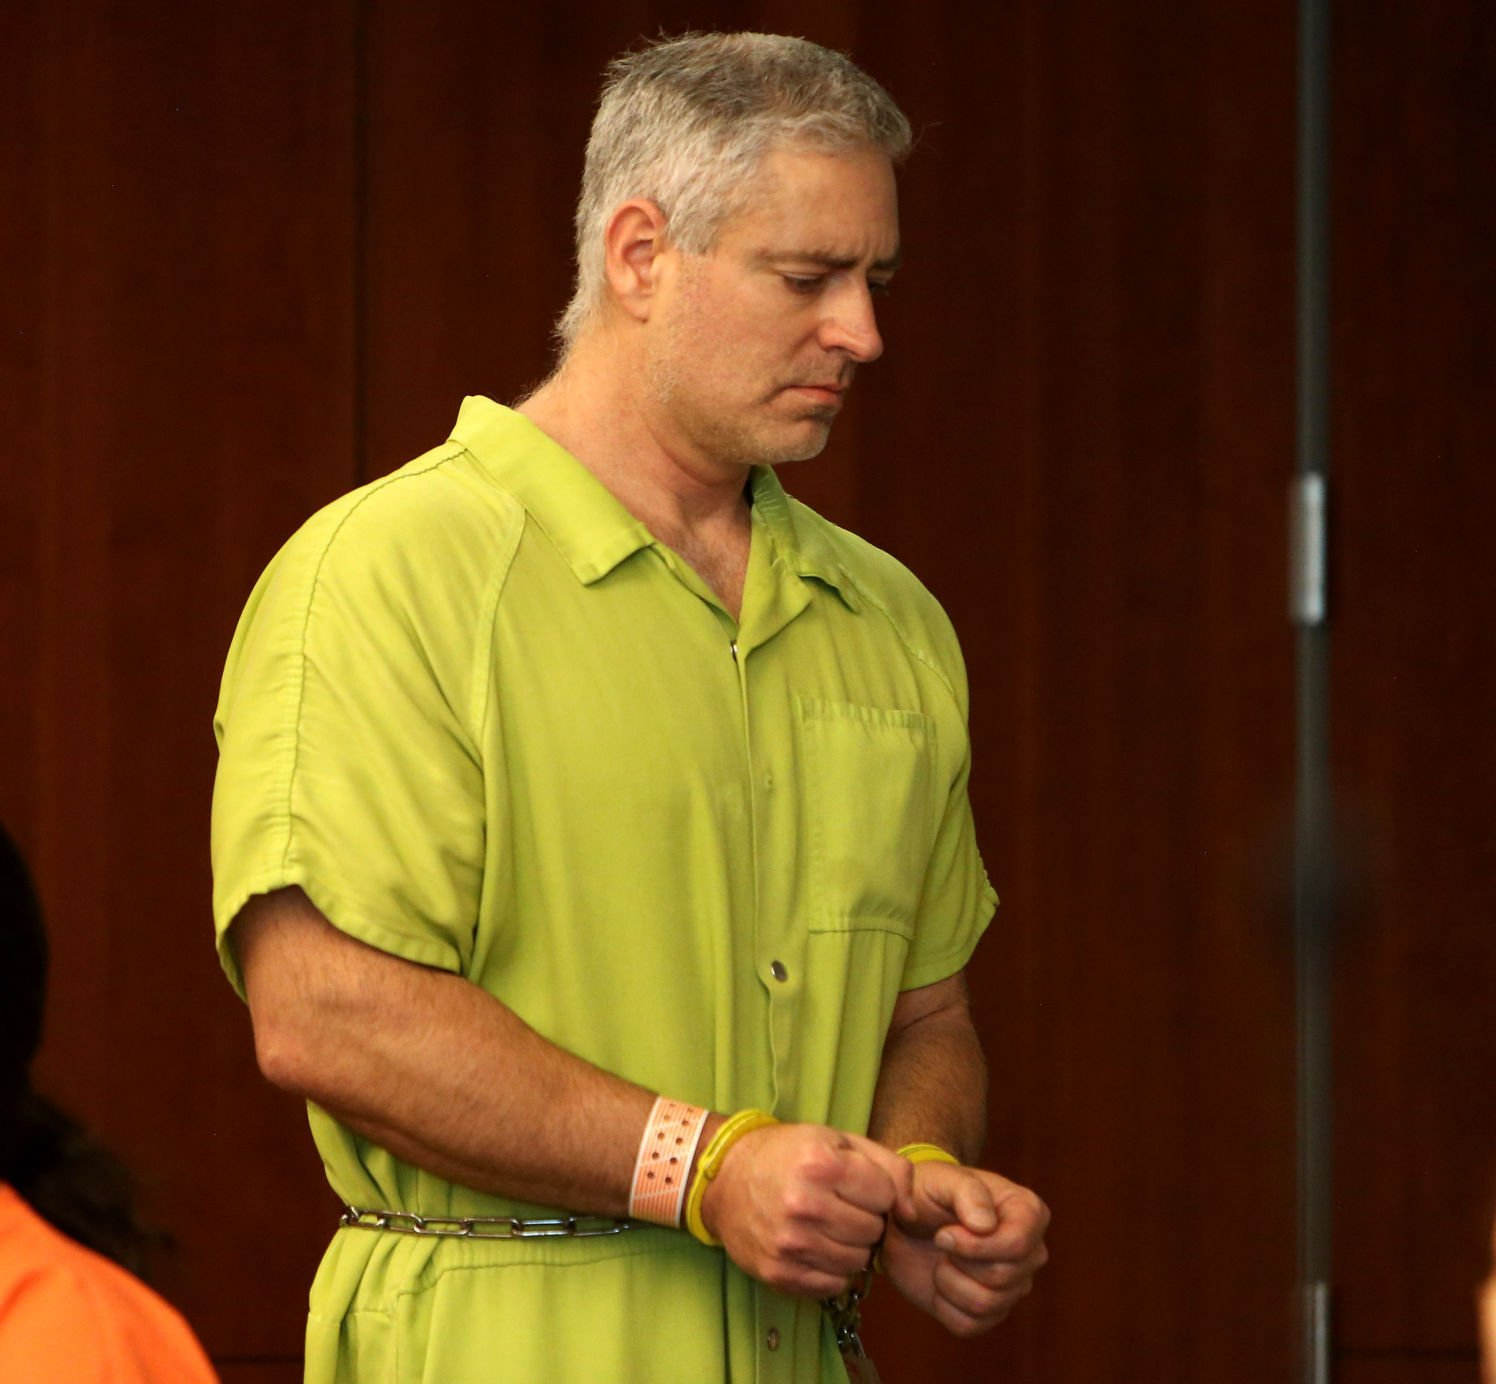 Doctor Pleads Guilty After Importing Deca-Durabolin